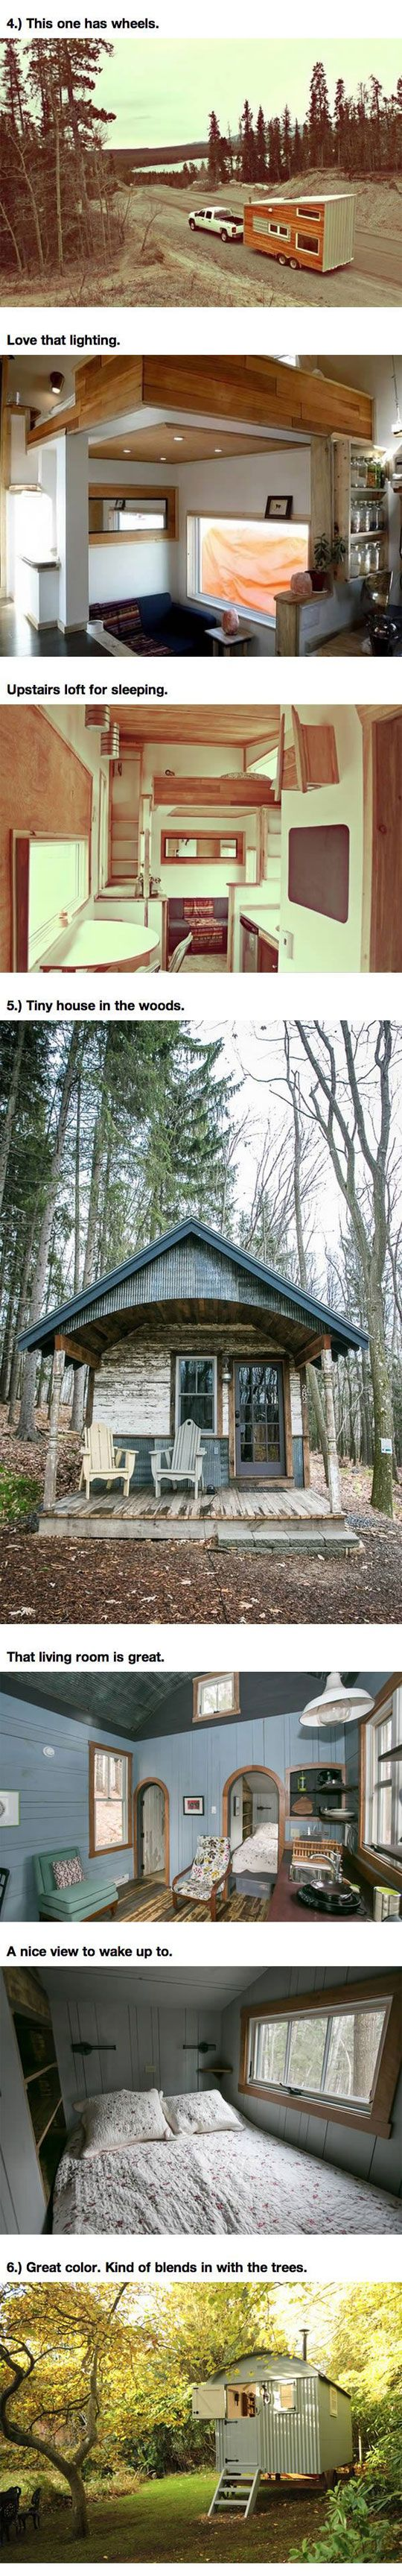 best utiny houses u tree housesu images on pinterest my house